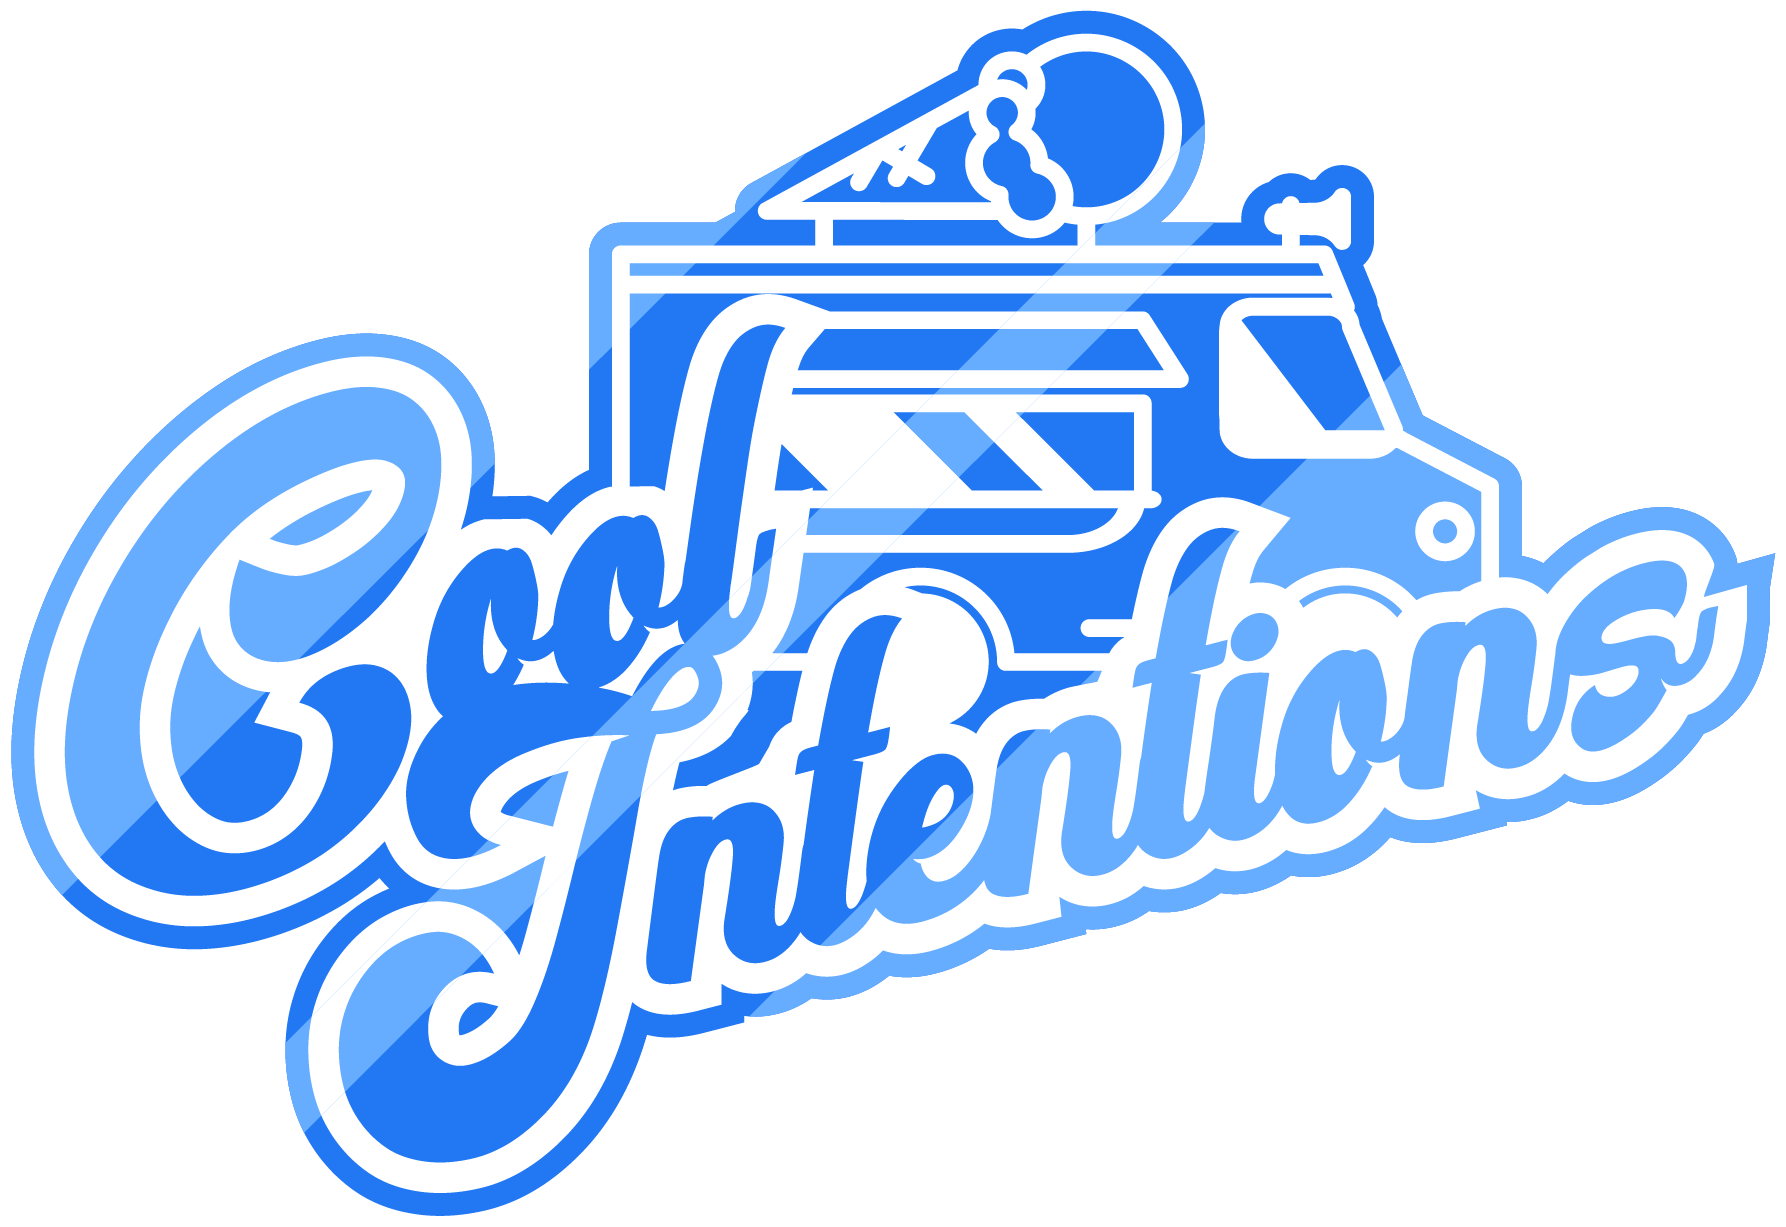 Cool Intentions Mobile Ice Creamery